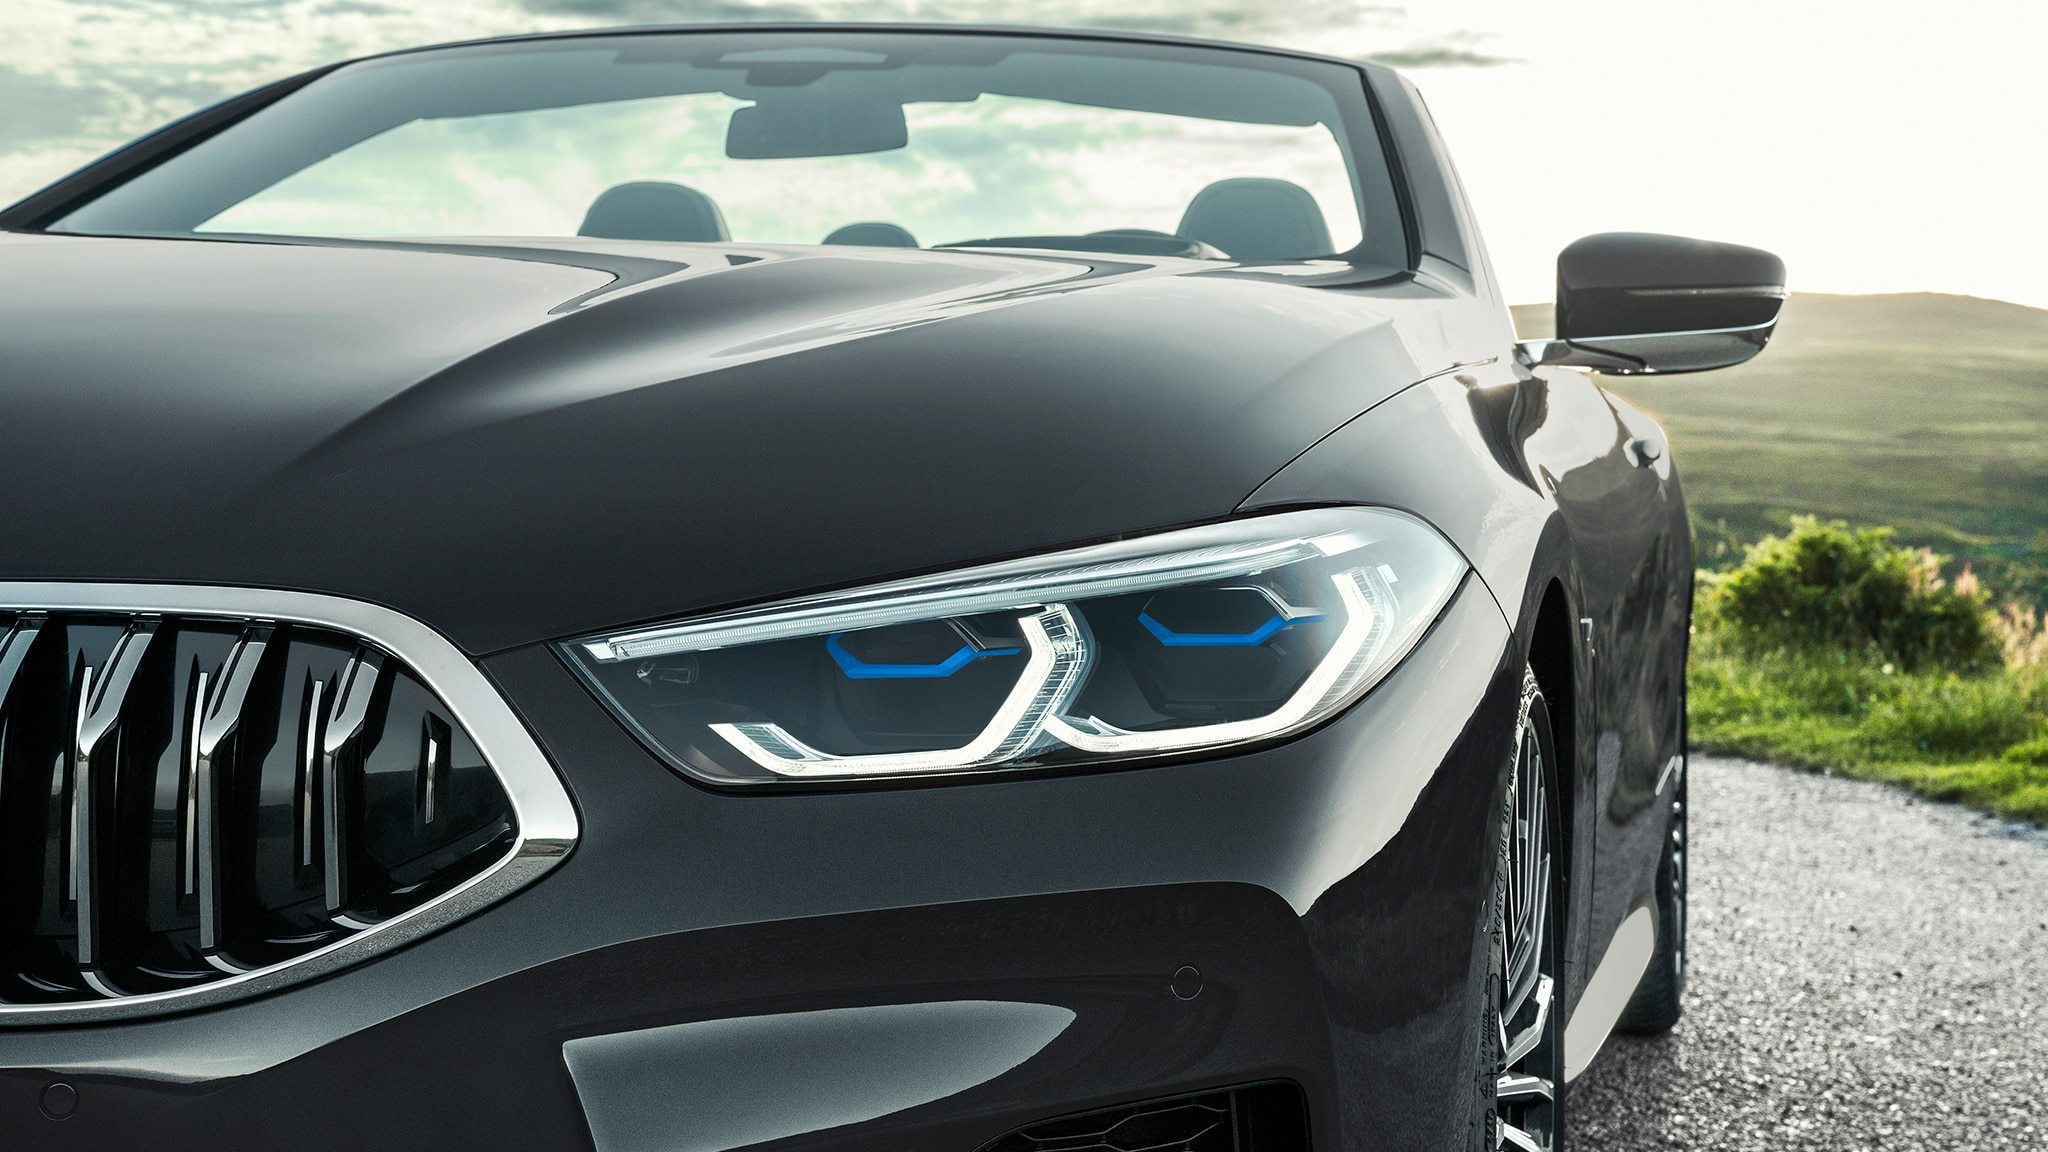 2019 BMW M850i Convertible Headlight And Grille